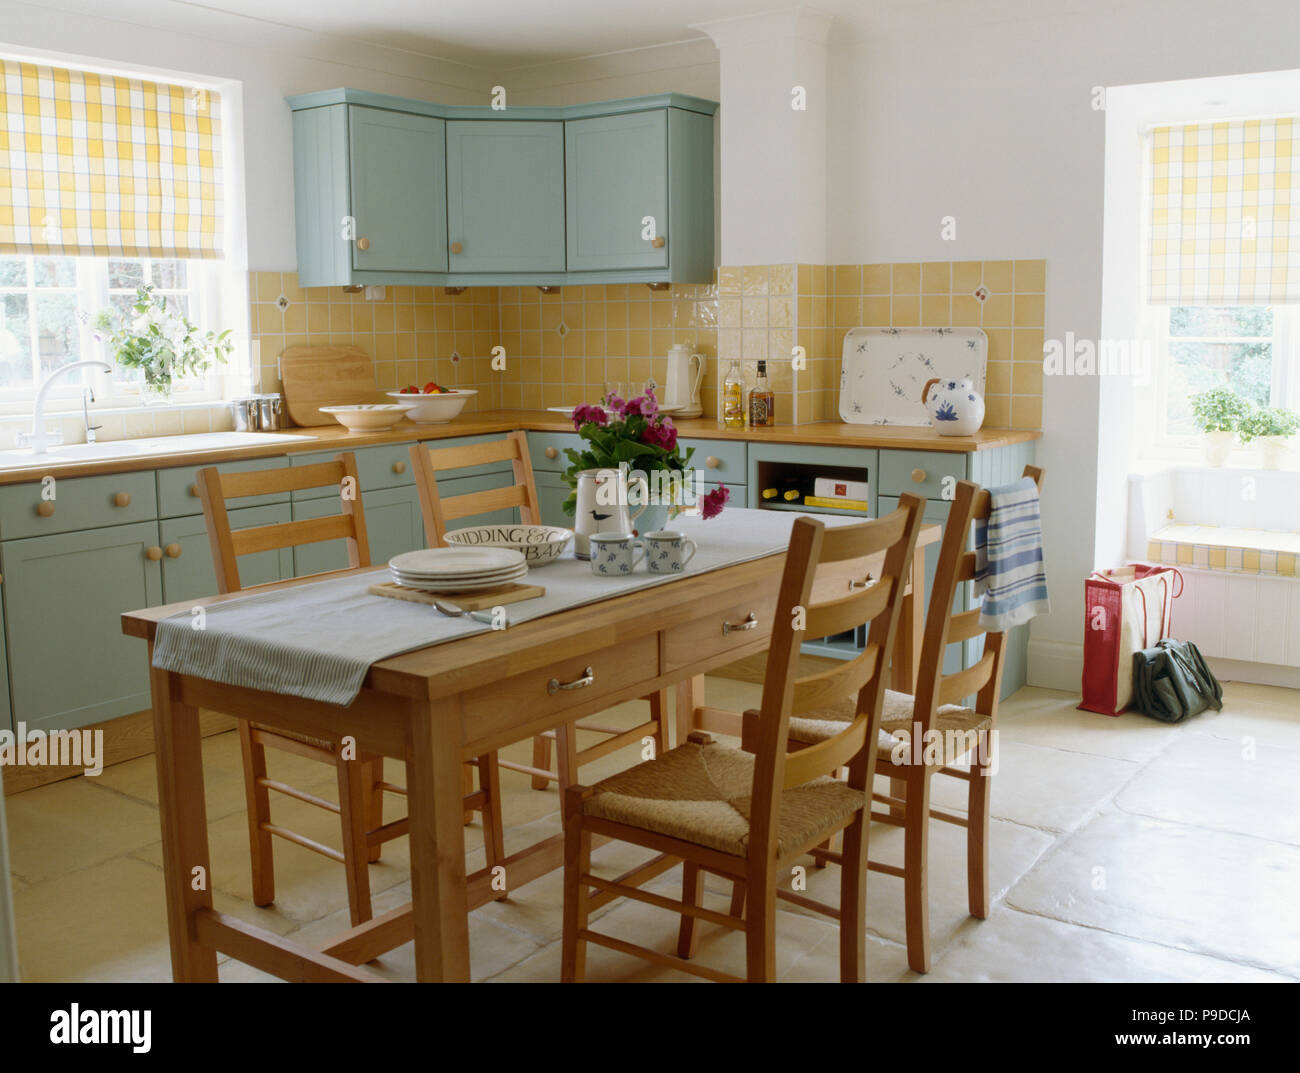 Simple Wooden Table And Chairs In Cottage Kitchen Dining Room With  Turquoise Units